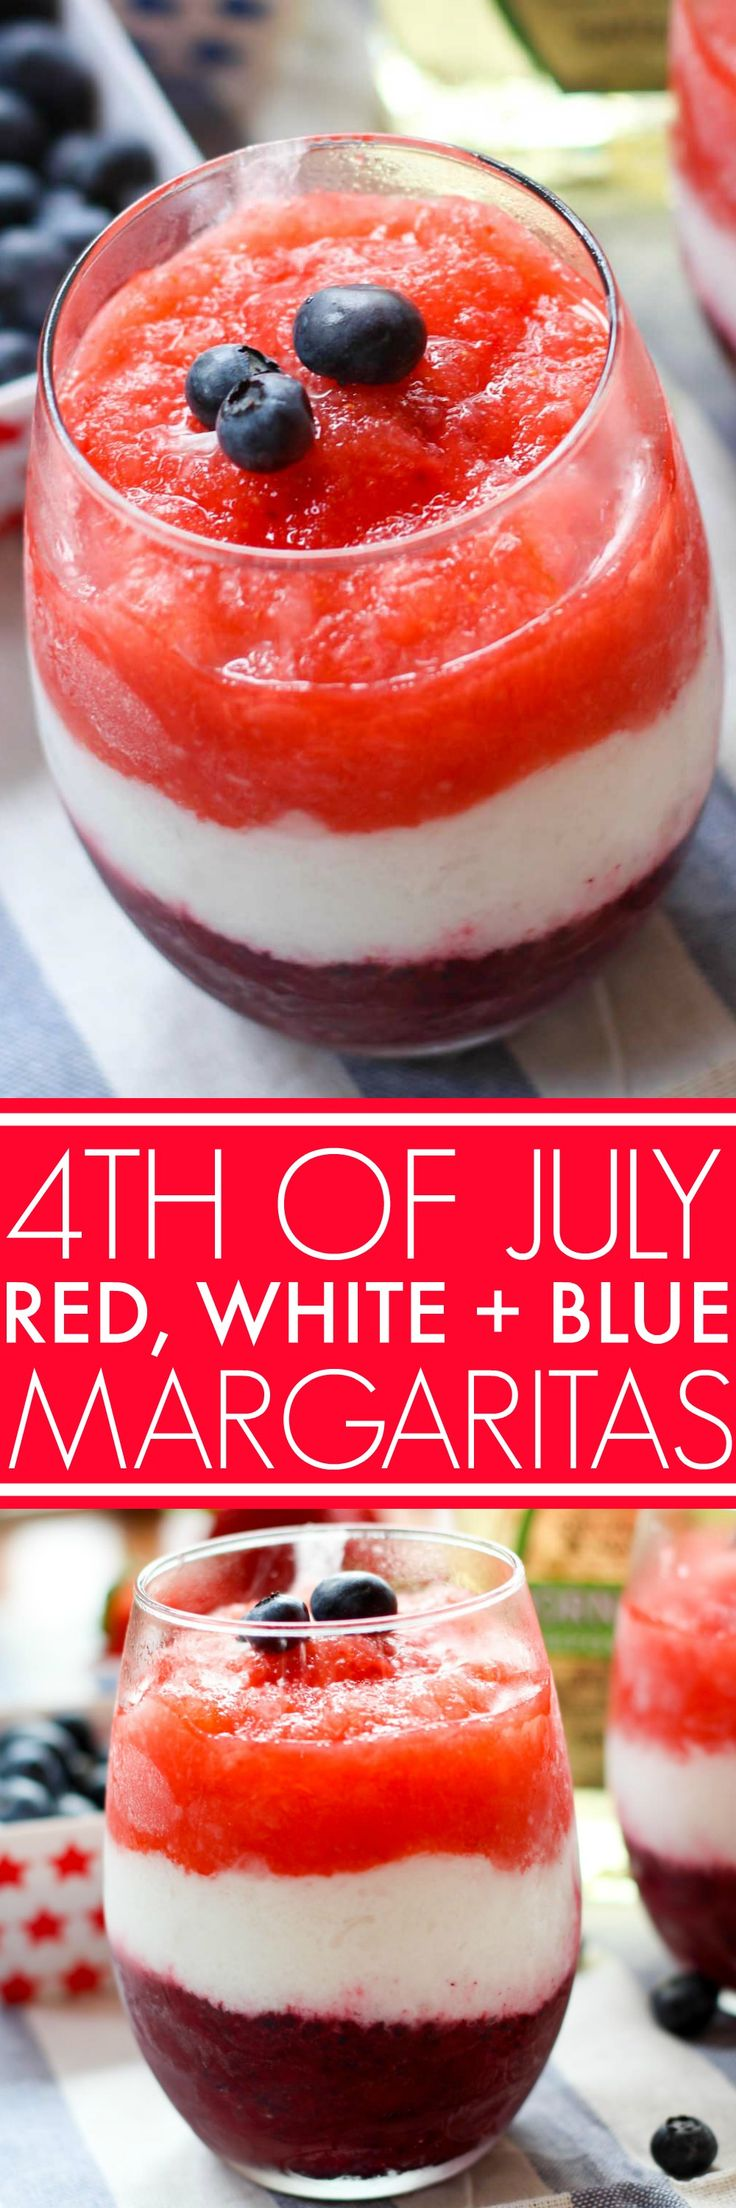 These Red, White & Blue Margaritas are the perfect refreshing cocktail for the 4th of July or Memorial Day! | platingsandpairings.com